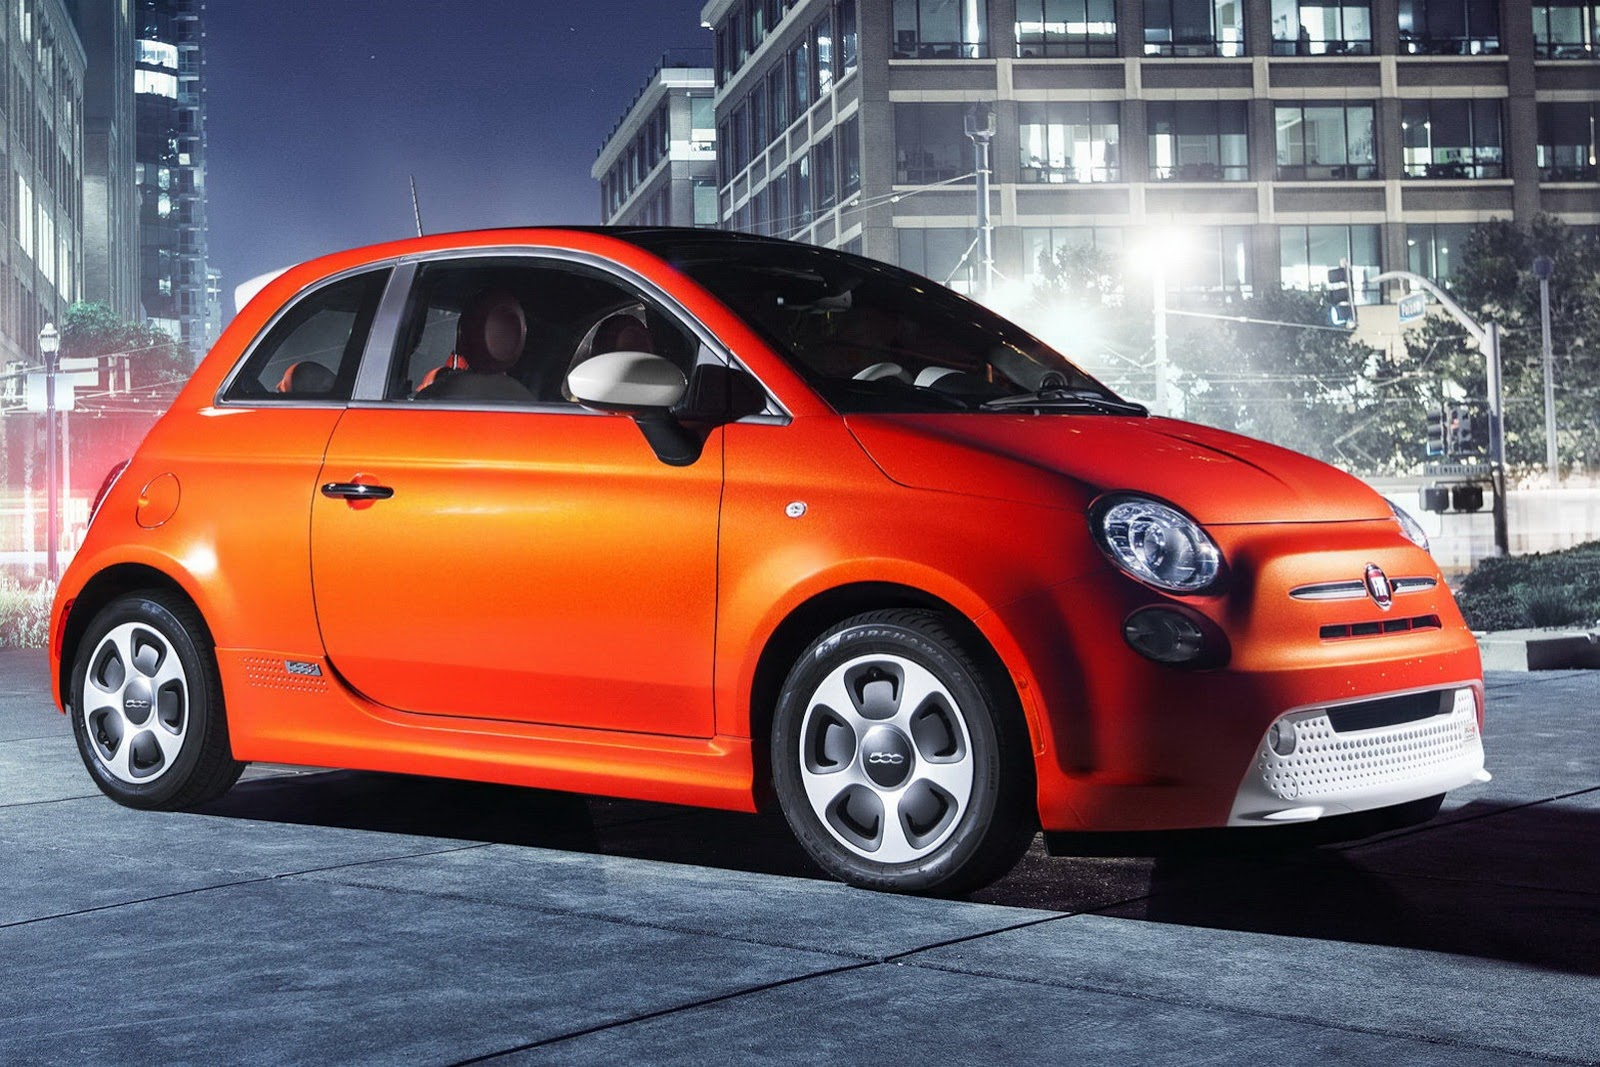 2013 Fiat 500e gets official EPA fuel economy ratings